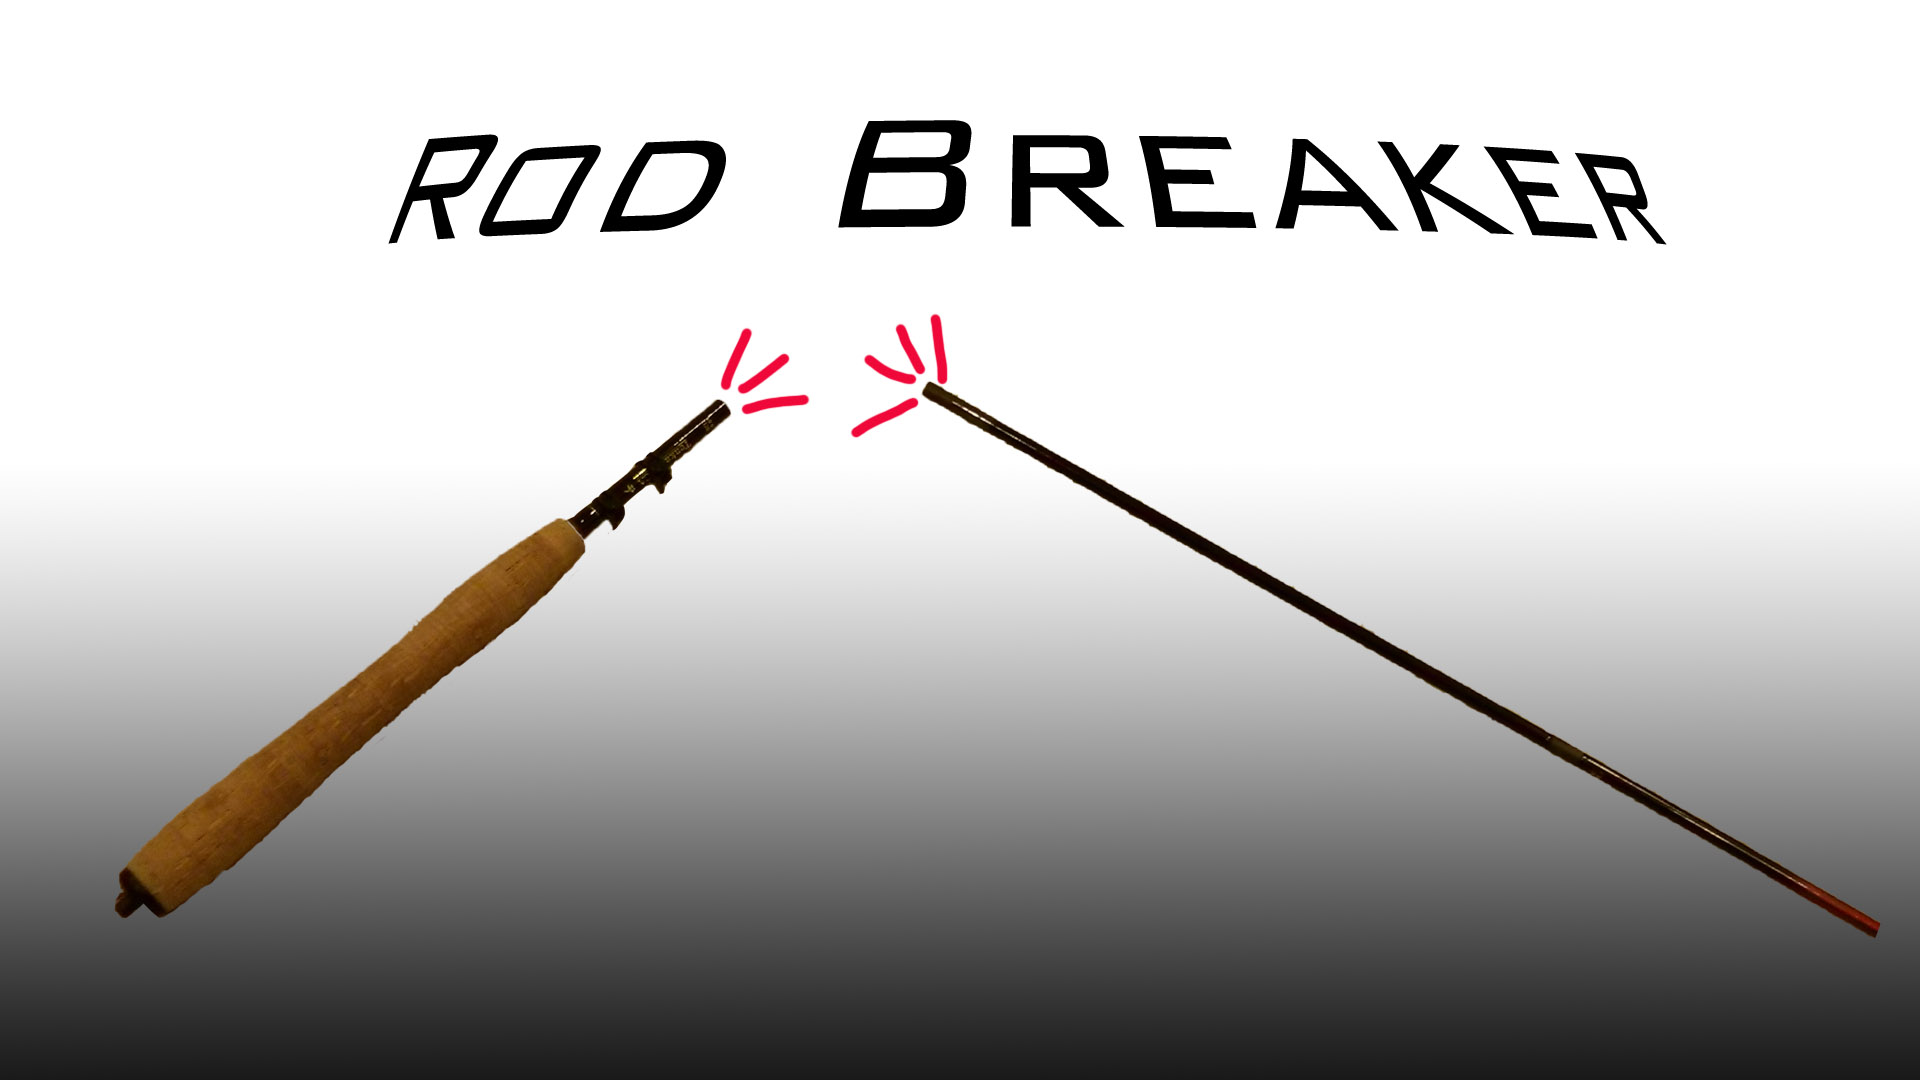 Ben's Rhodo rod above snapped fighting Rod Breaker (image reconstructed by forensic artist based on eye witness accounts)